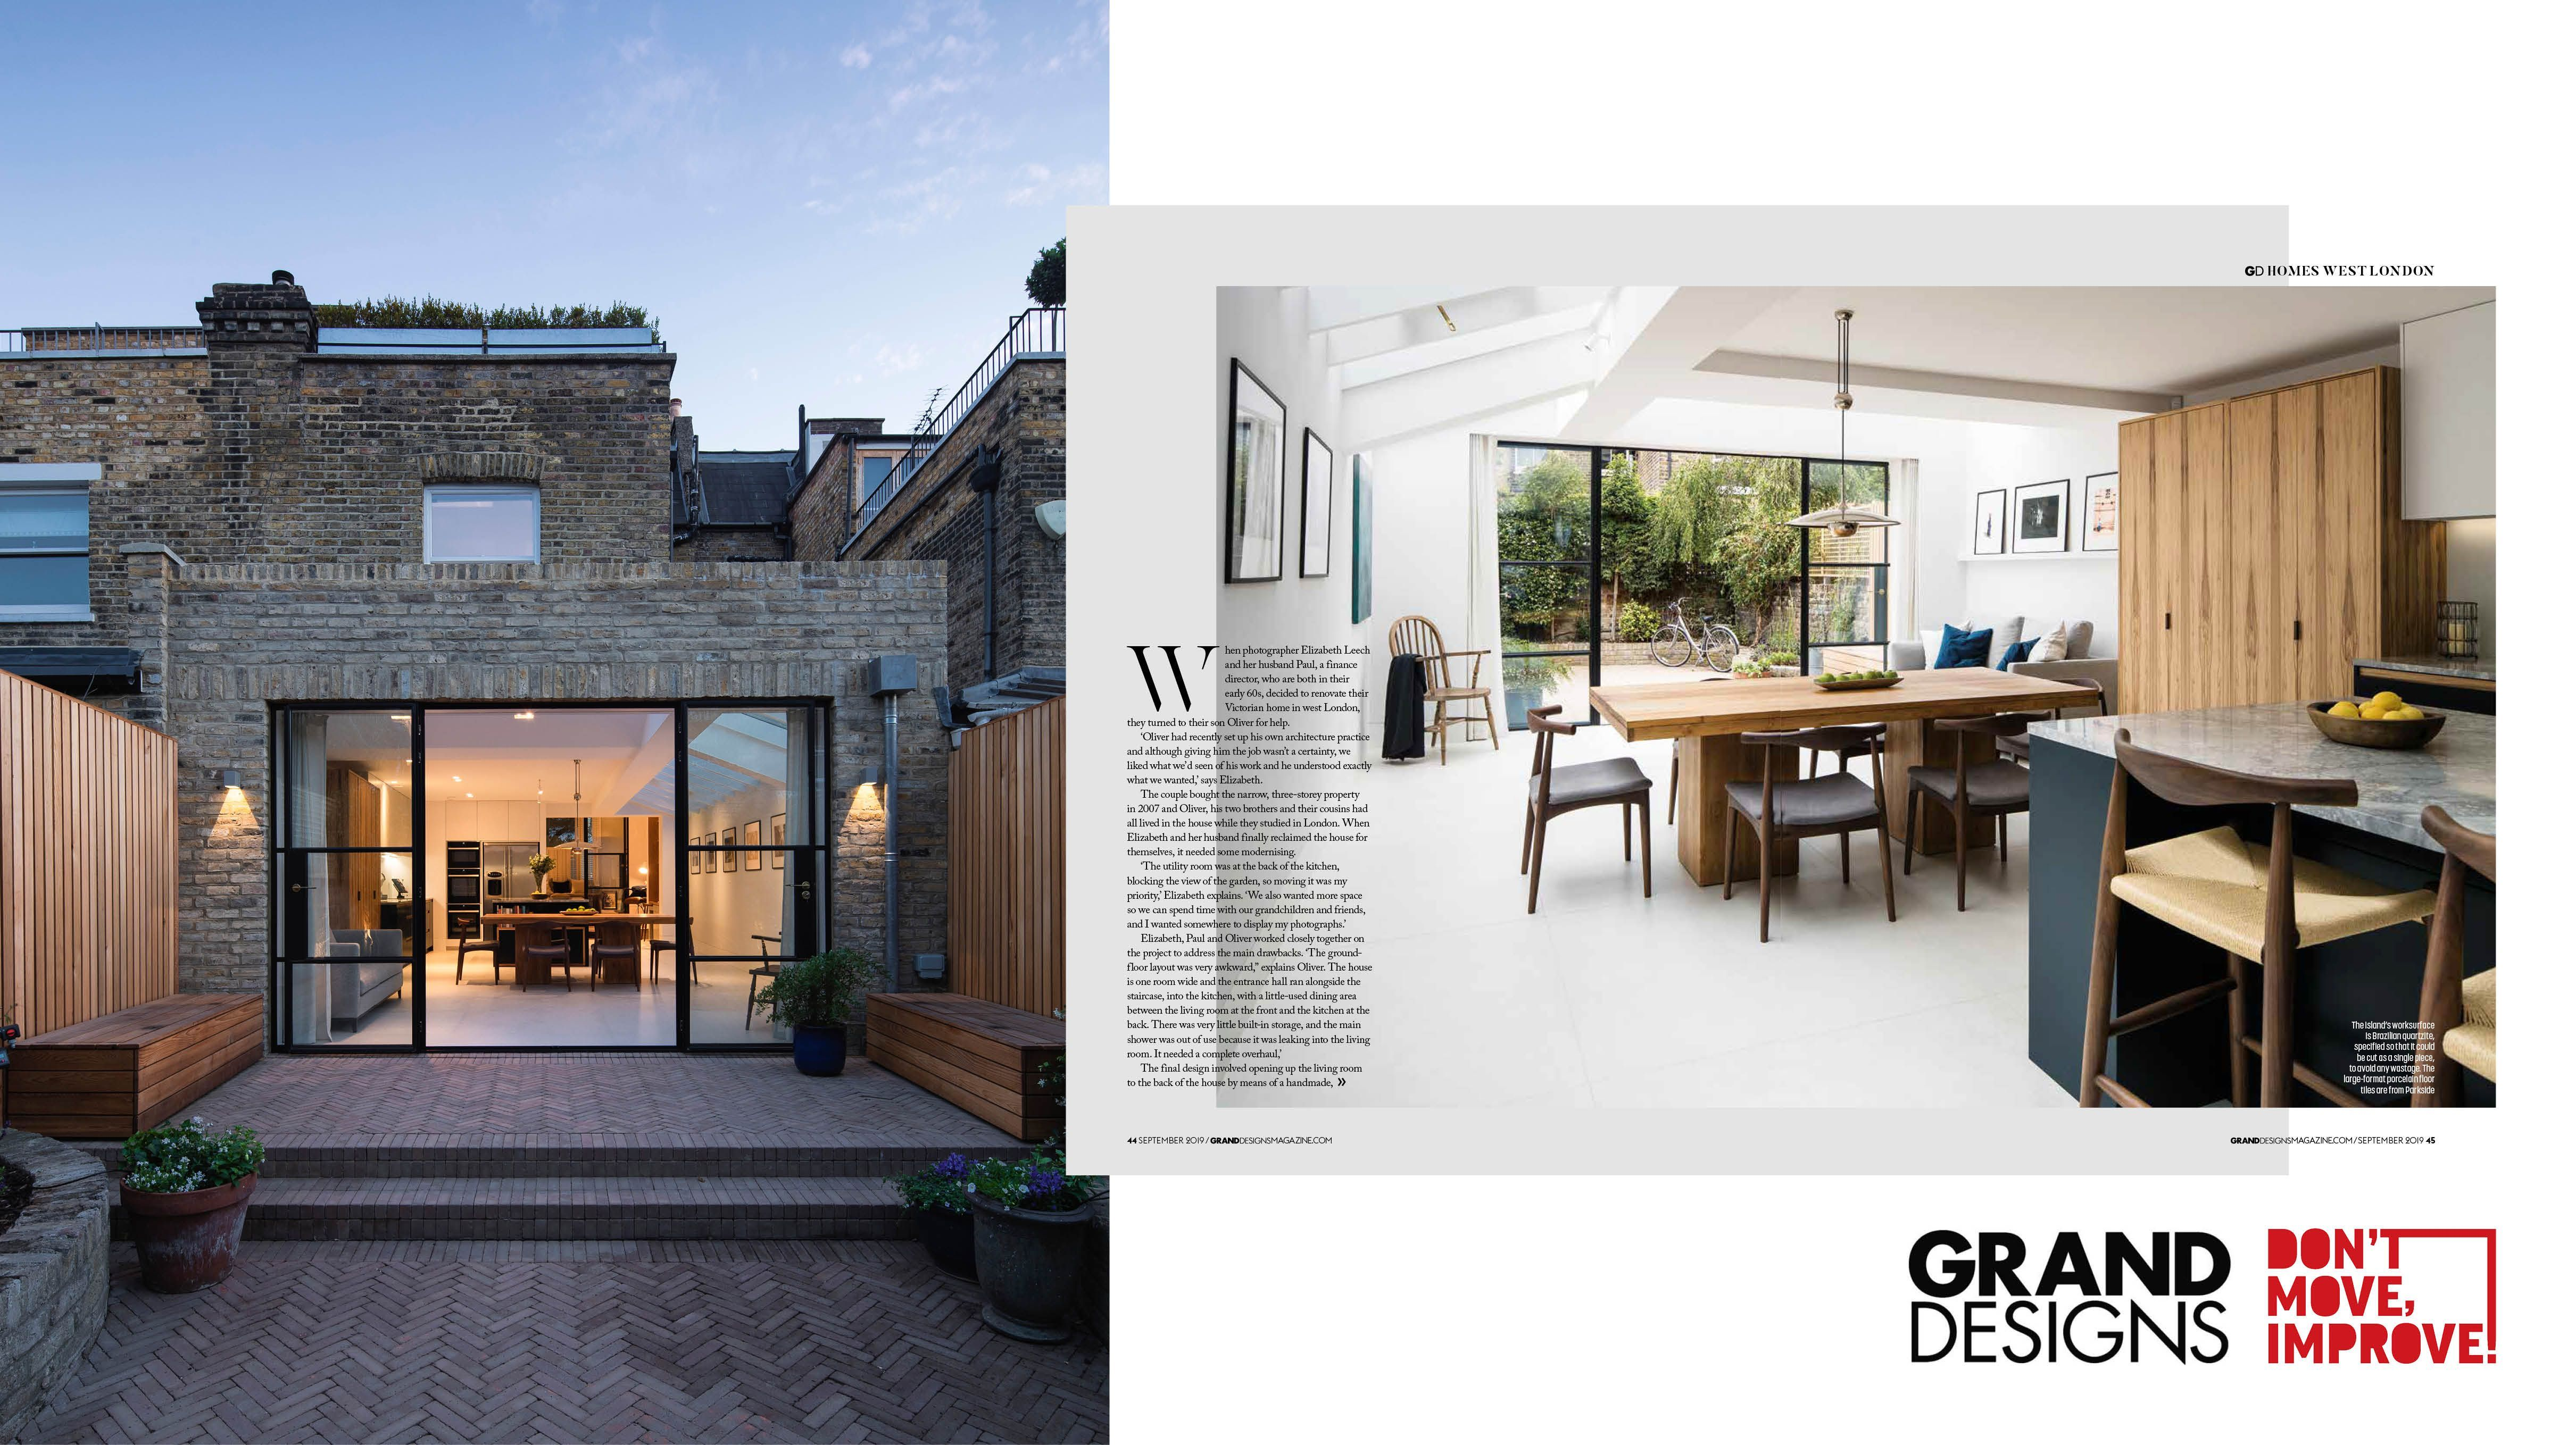 Find your ideal home design pro on designfor-me.com - get matched and see who's interested in your home project. Click image to see more inspiration from our design pros Design by Oliver, architect from Wandsworth, London #architecture #homedesign #modernhomes #homeinspiration #extensions #extensiondesign #extensioninspiration #extensionideas #houseextension #slidingdoors #skylights #rooflights